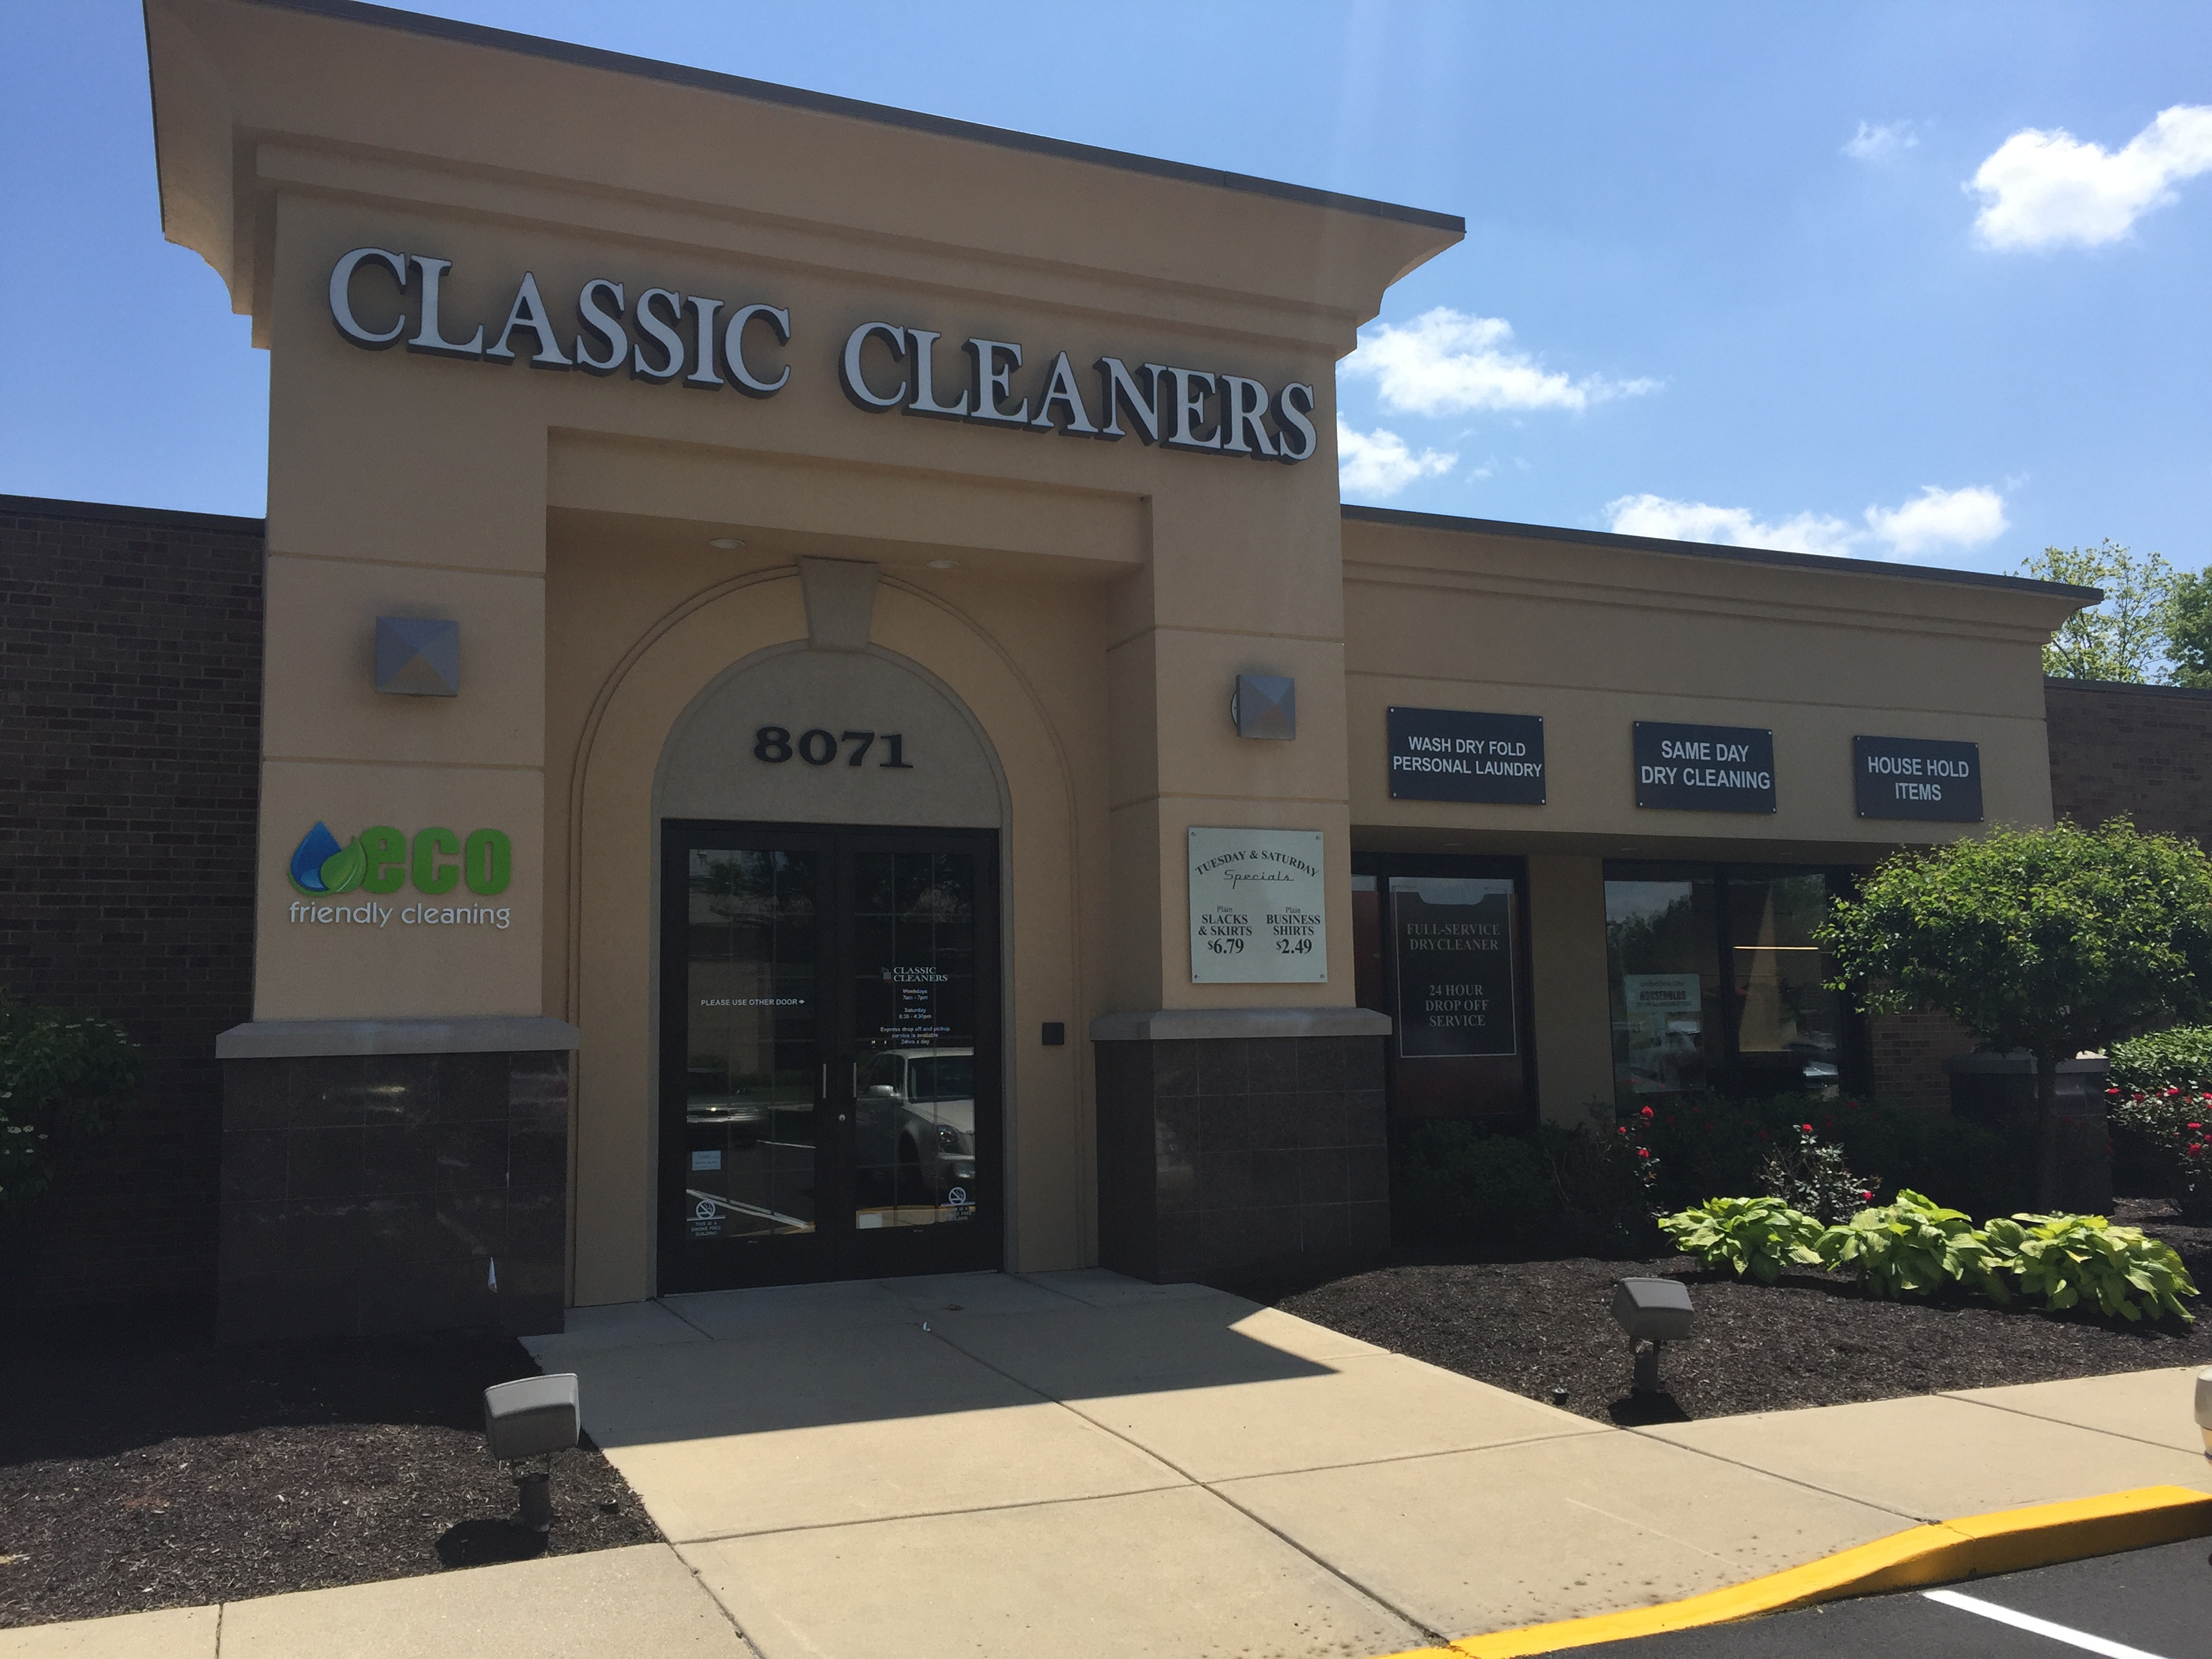 Classic Cleaners | Dry Cleaning & Laundry in 8071 Knue Road - Indianapolis IN - Reviews - Photos - Phone Number